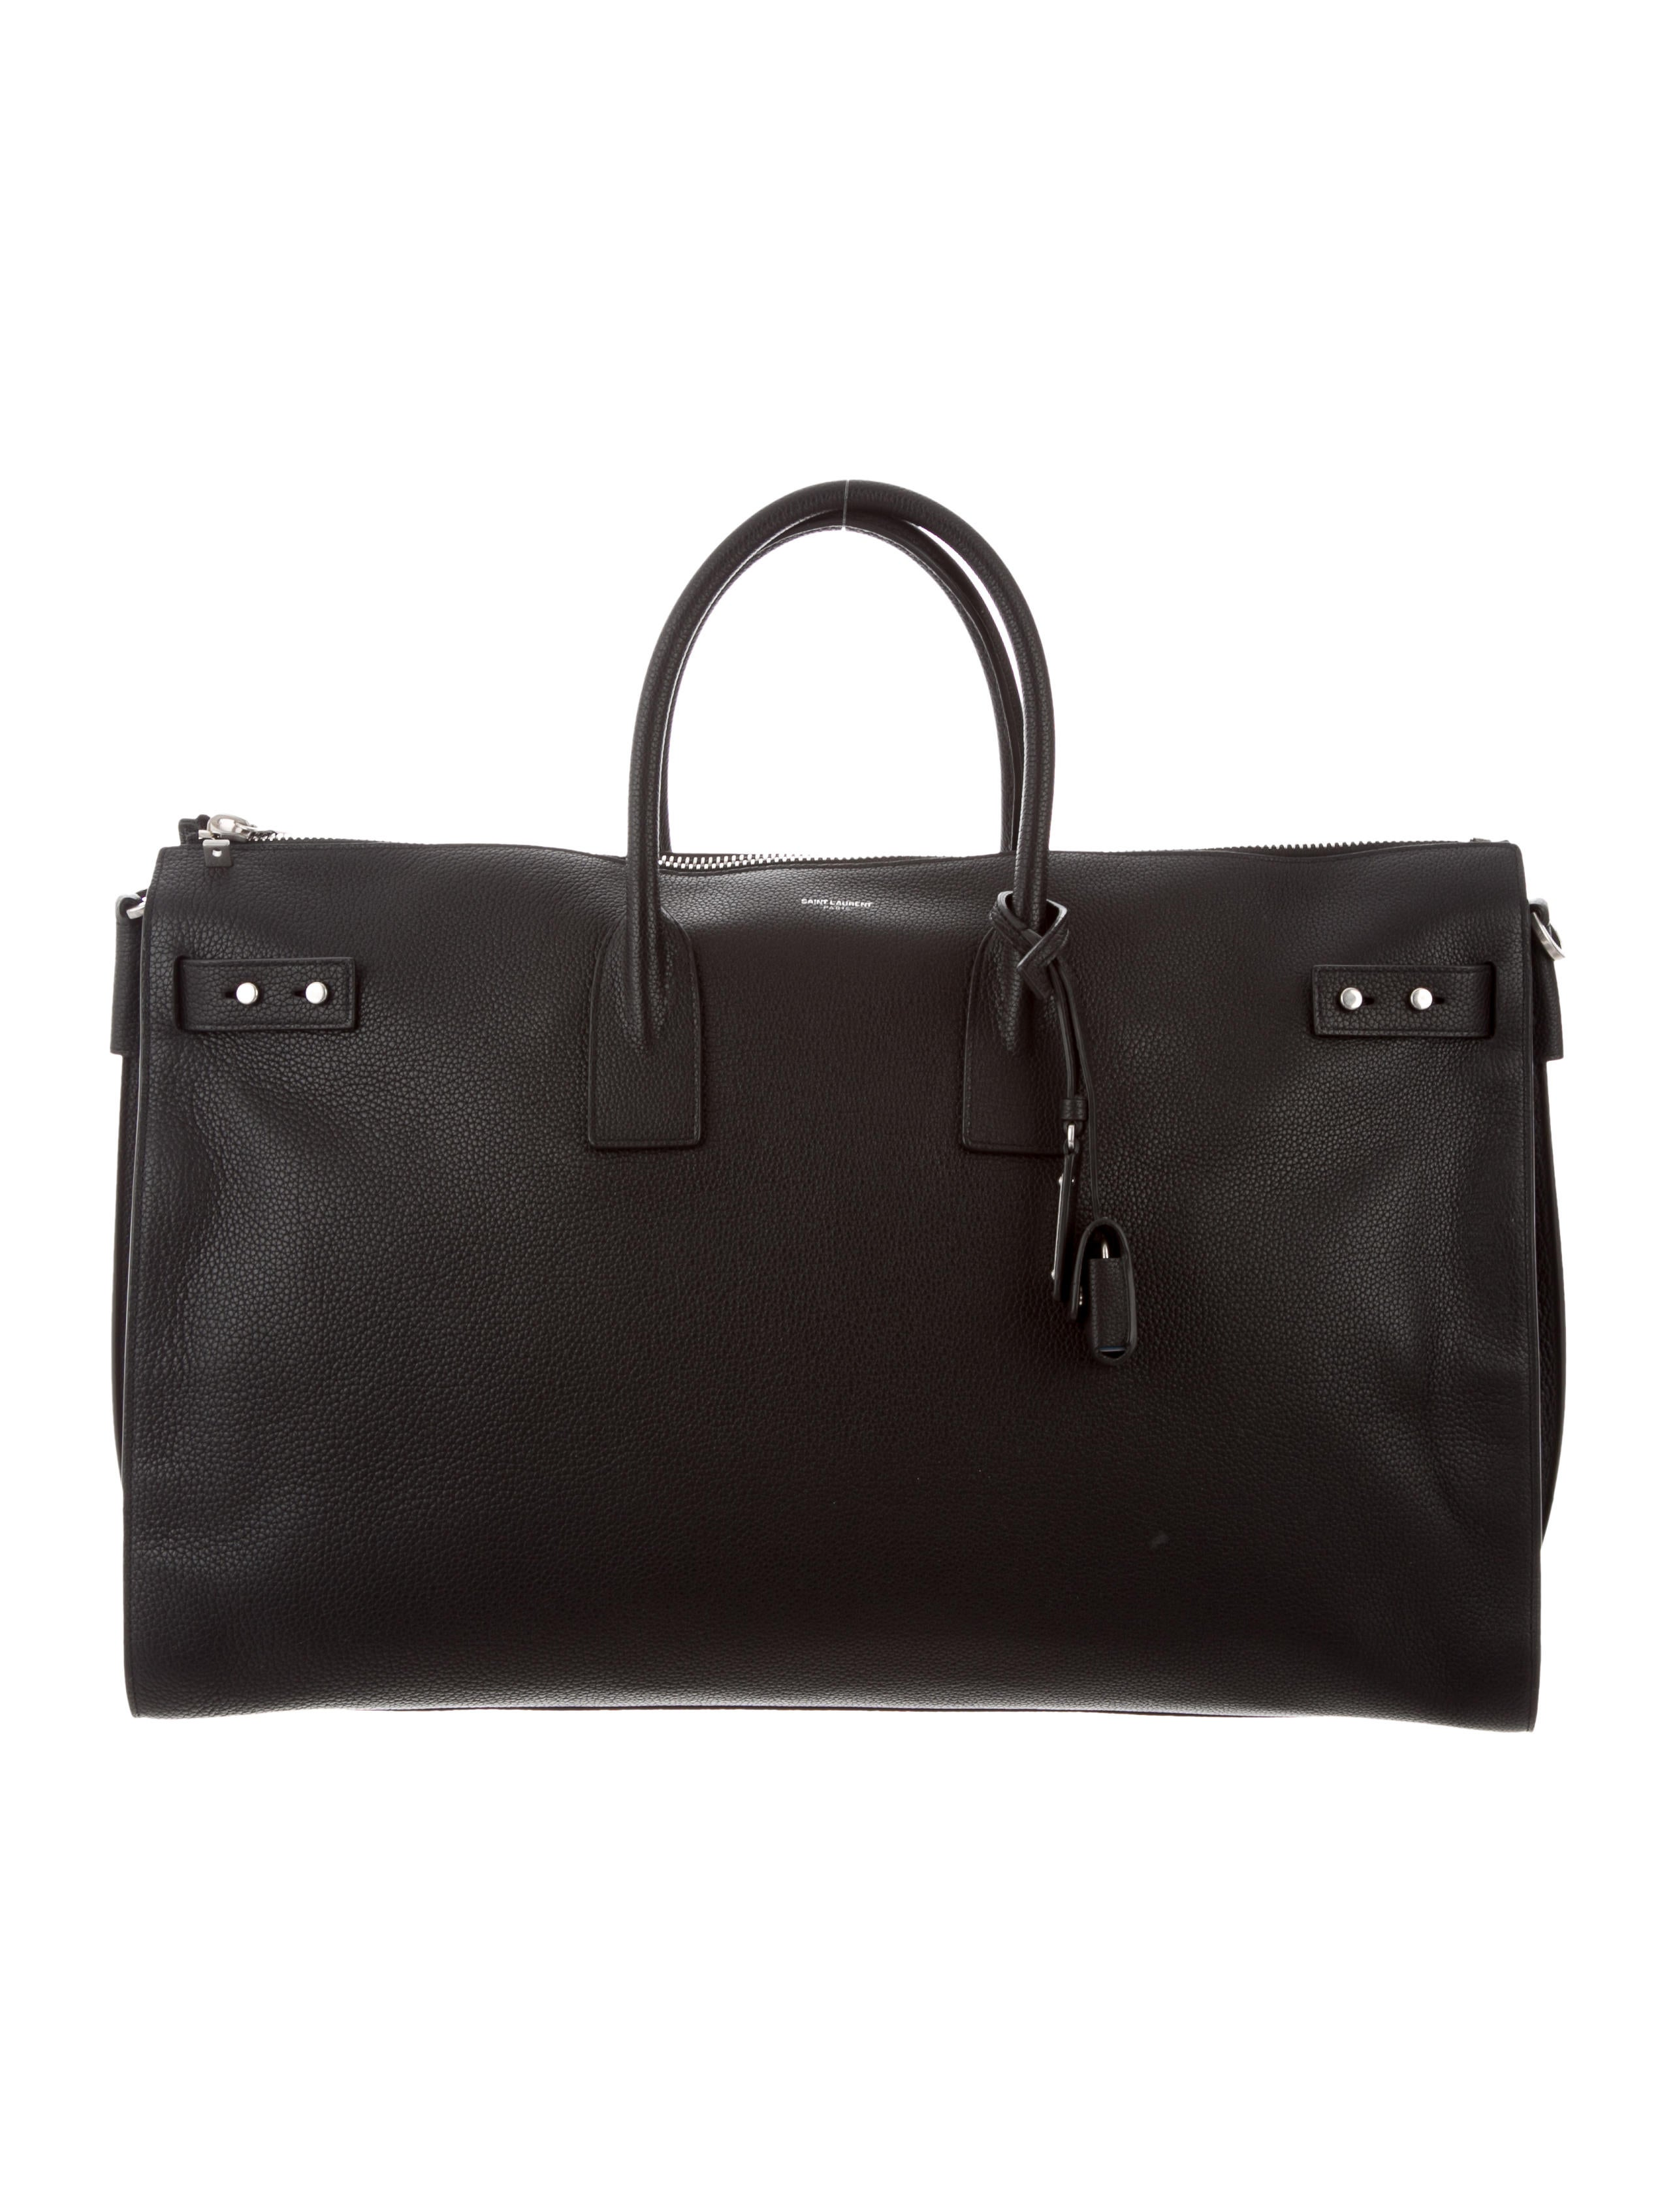 5802593d4f Saint Laurent Large Sac de Jour Souple 48H Duffel Bag w  Tags - Bags ...